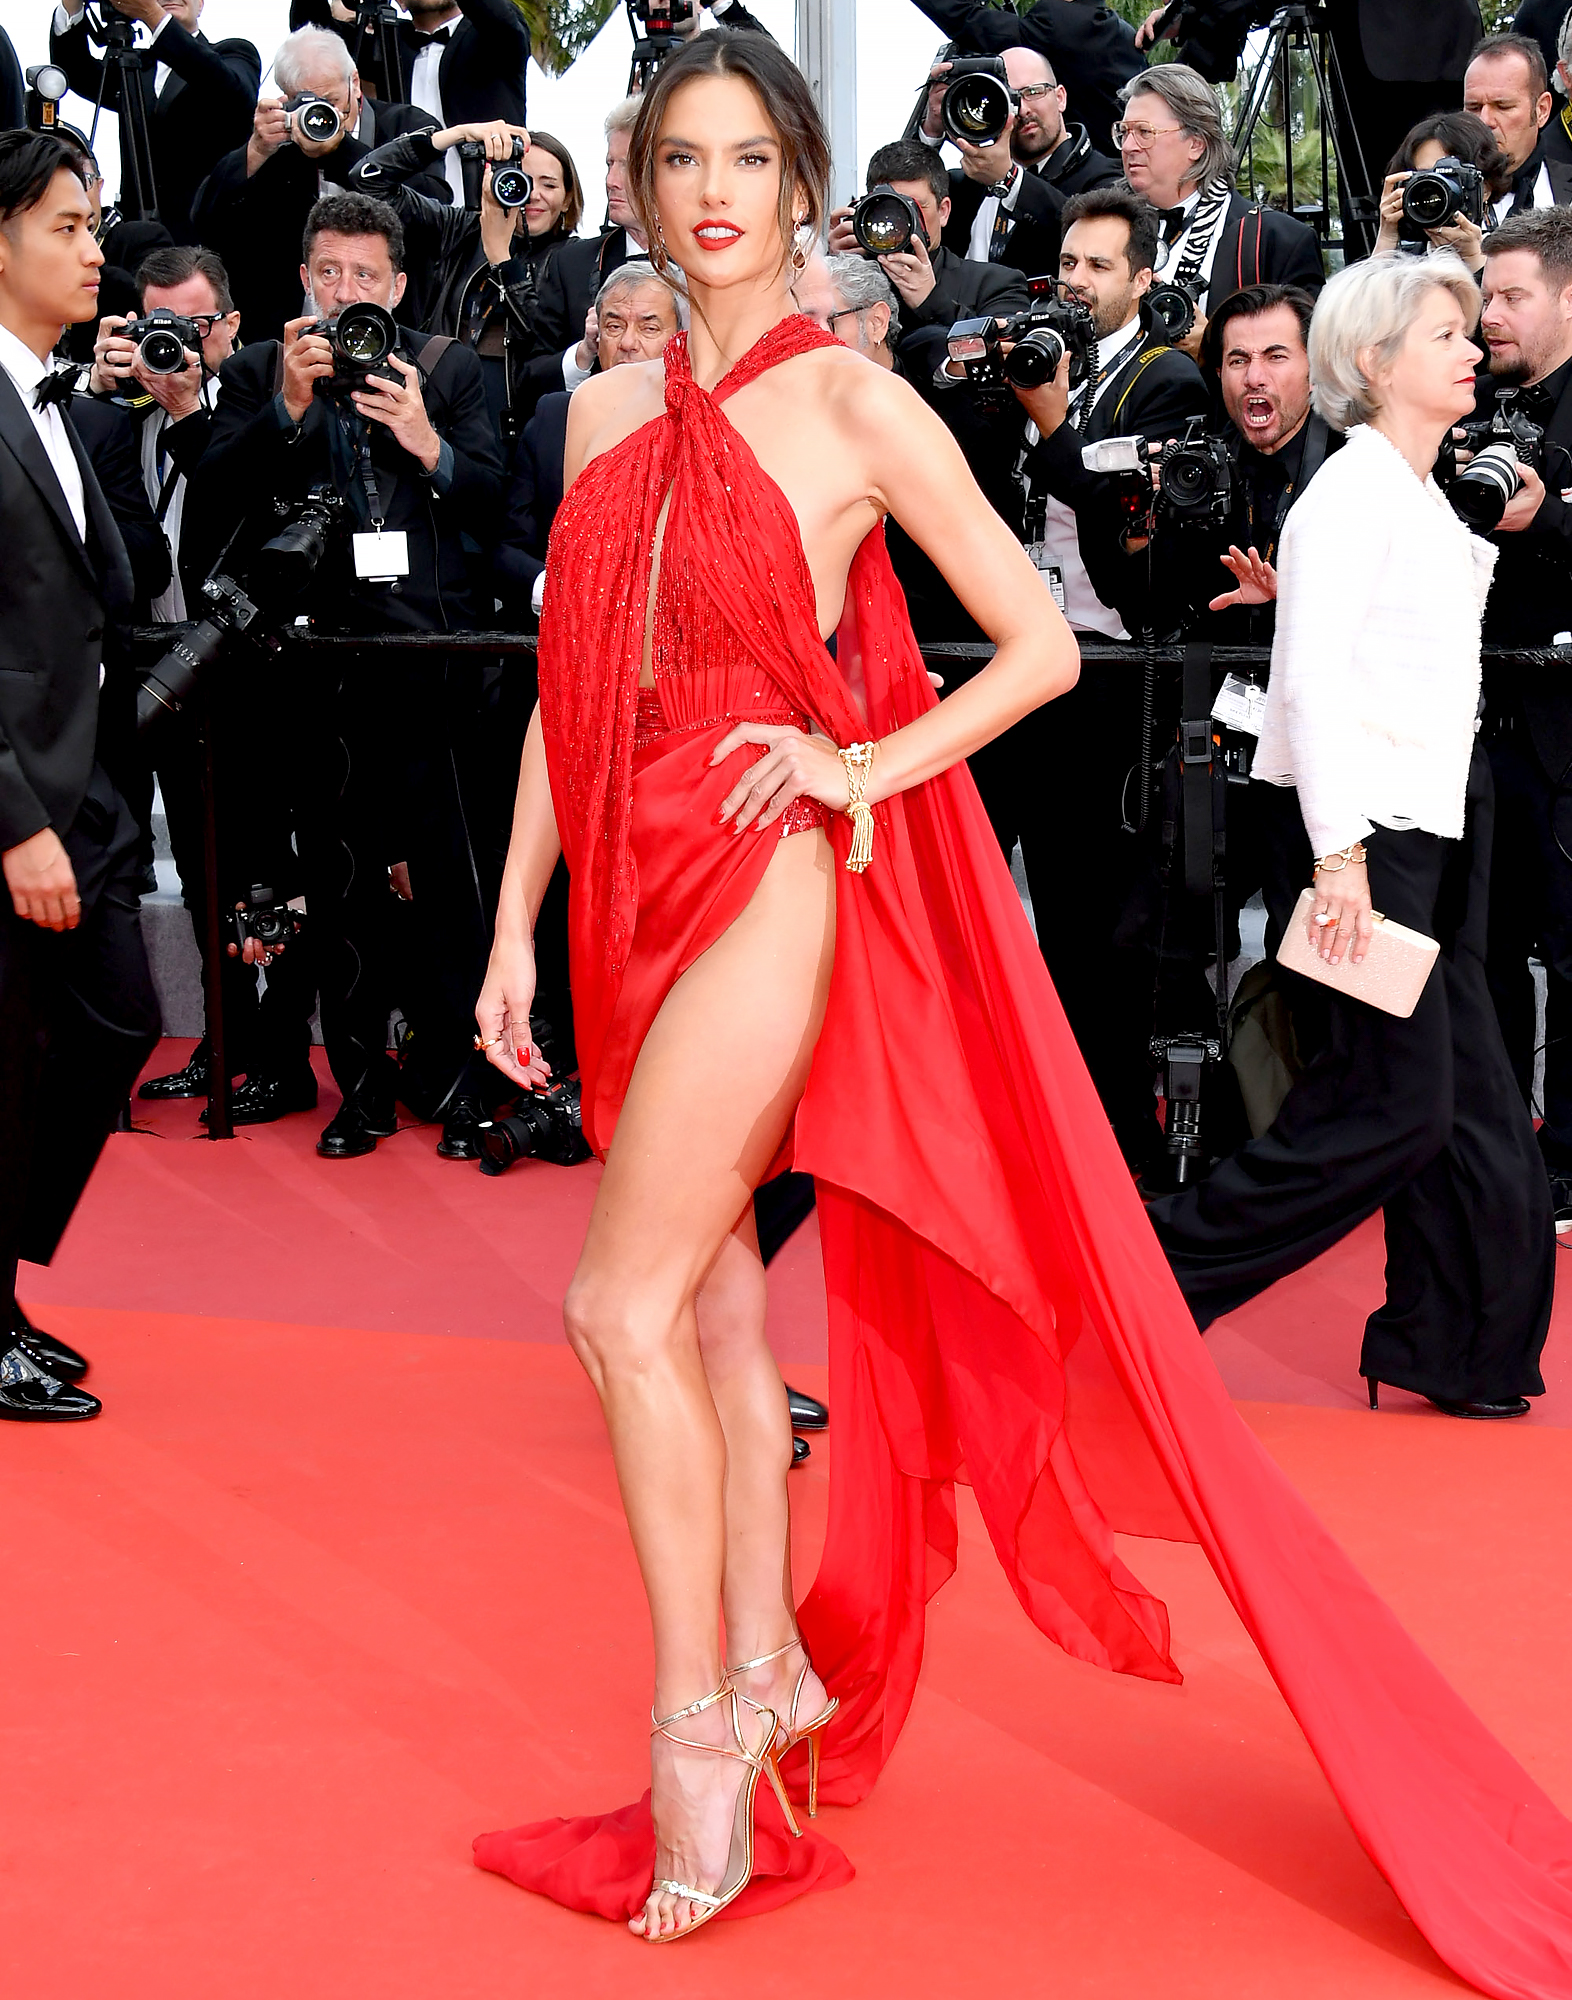 Alessandra-Ambrosio-Cannes-Festival - Red hot! The model matched the carpet at the Les Miserables premiere on Wednesday, May 15, in a nearly naked Julien Macdonald number.